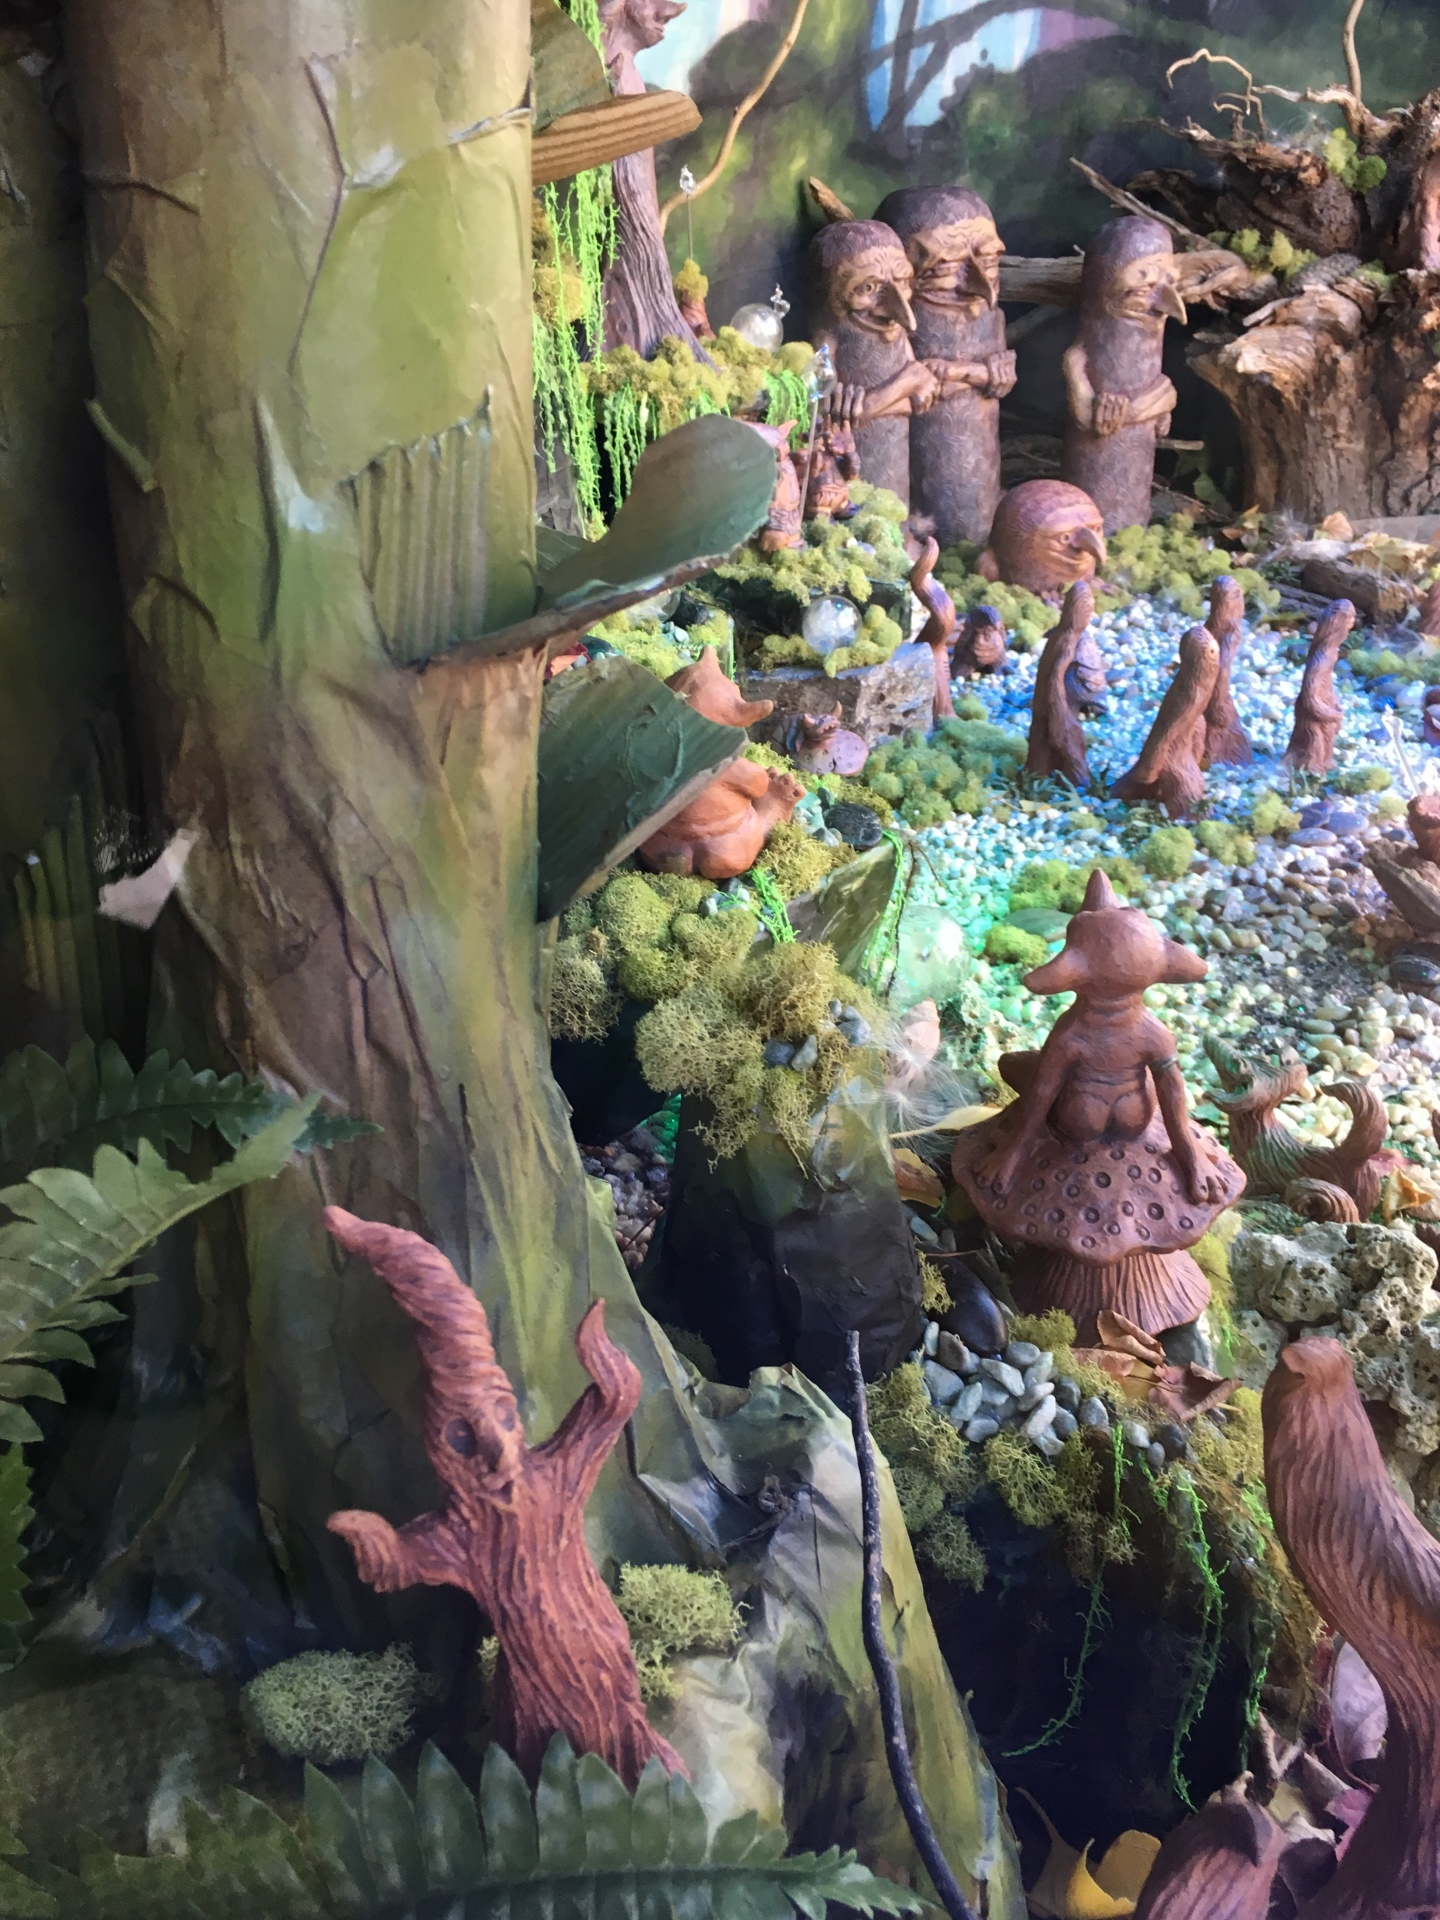 Mystic Realm, Art Installation, Metropolis Collective, Cindi Hardwicke, Zack Rudy,Clay Creatures for Sale, handmade pottery, clay animals for sale, fantasy sculpture, clay sculpture, dragon sculpture, elf sculpture, gnome sculpture, unique pottery, one-of-a-kind pottery, magical diorama, fantasy diorama, fantasy window display,